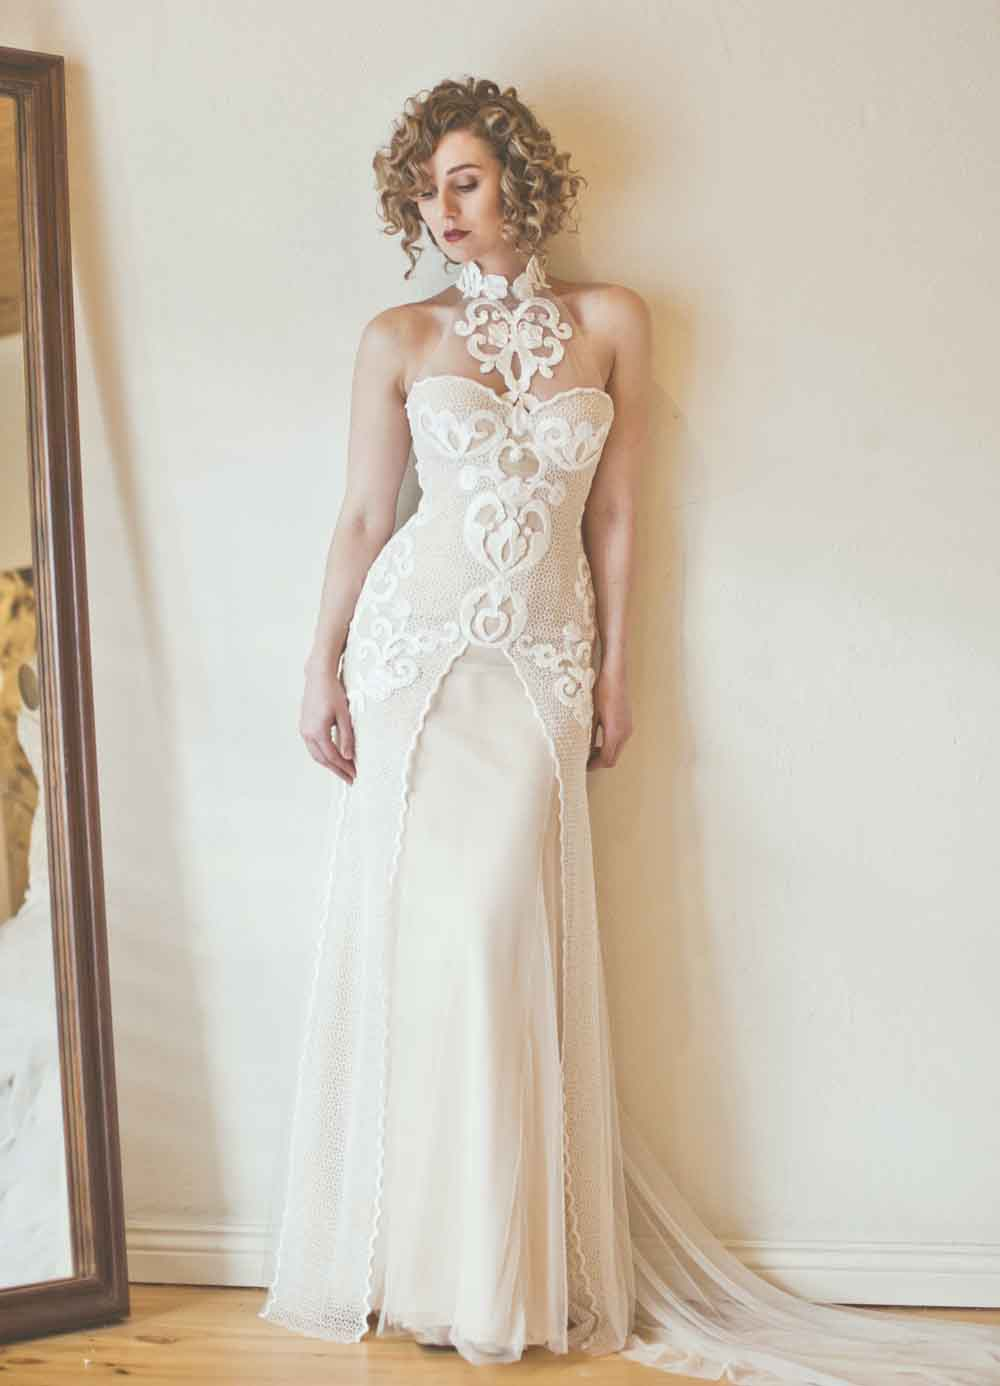 lace-wedding-dresses-wedding-dress-designer-melbourne-33.jpg